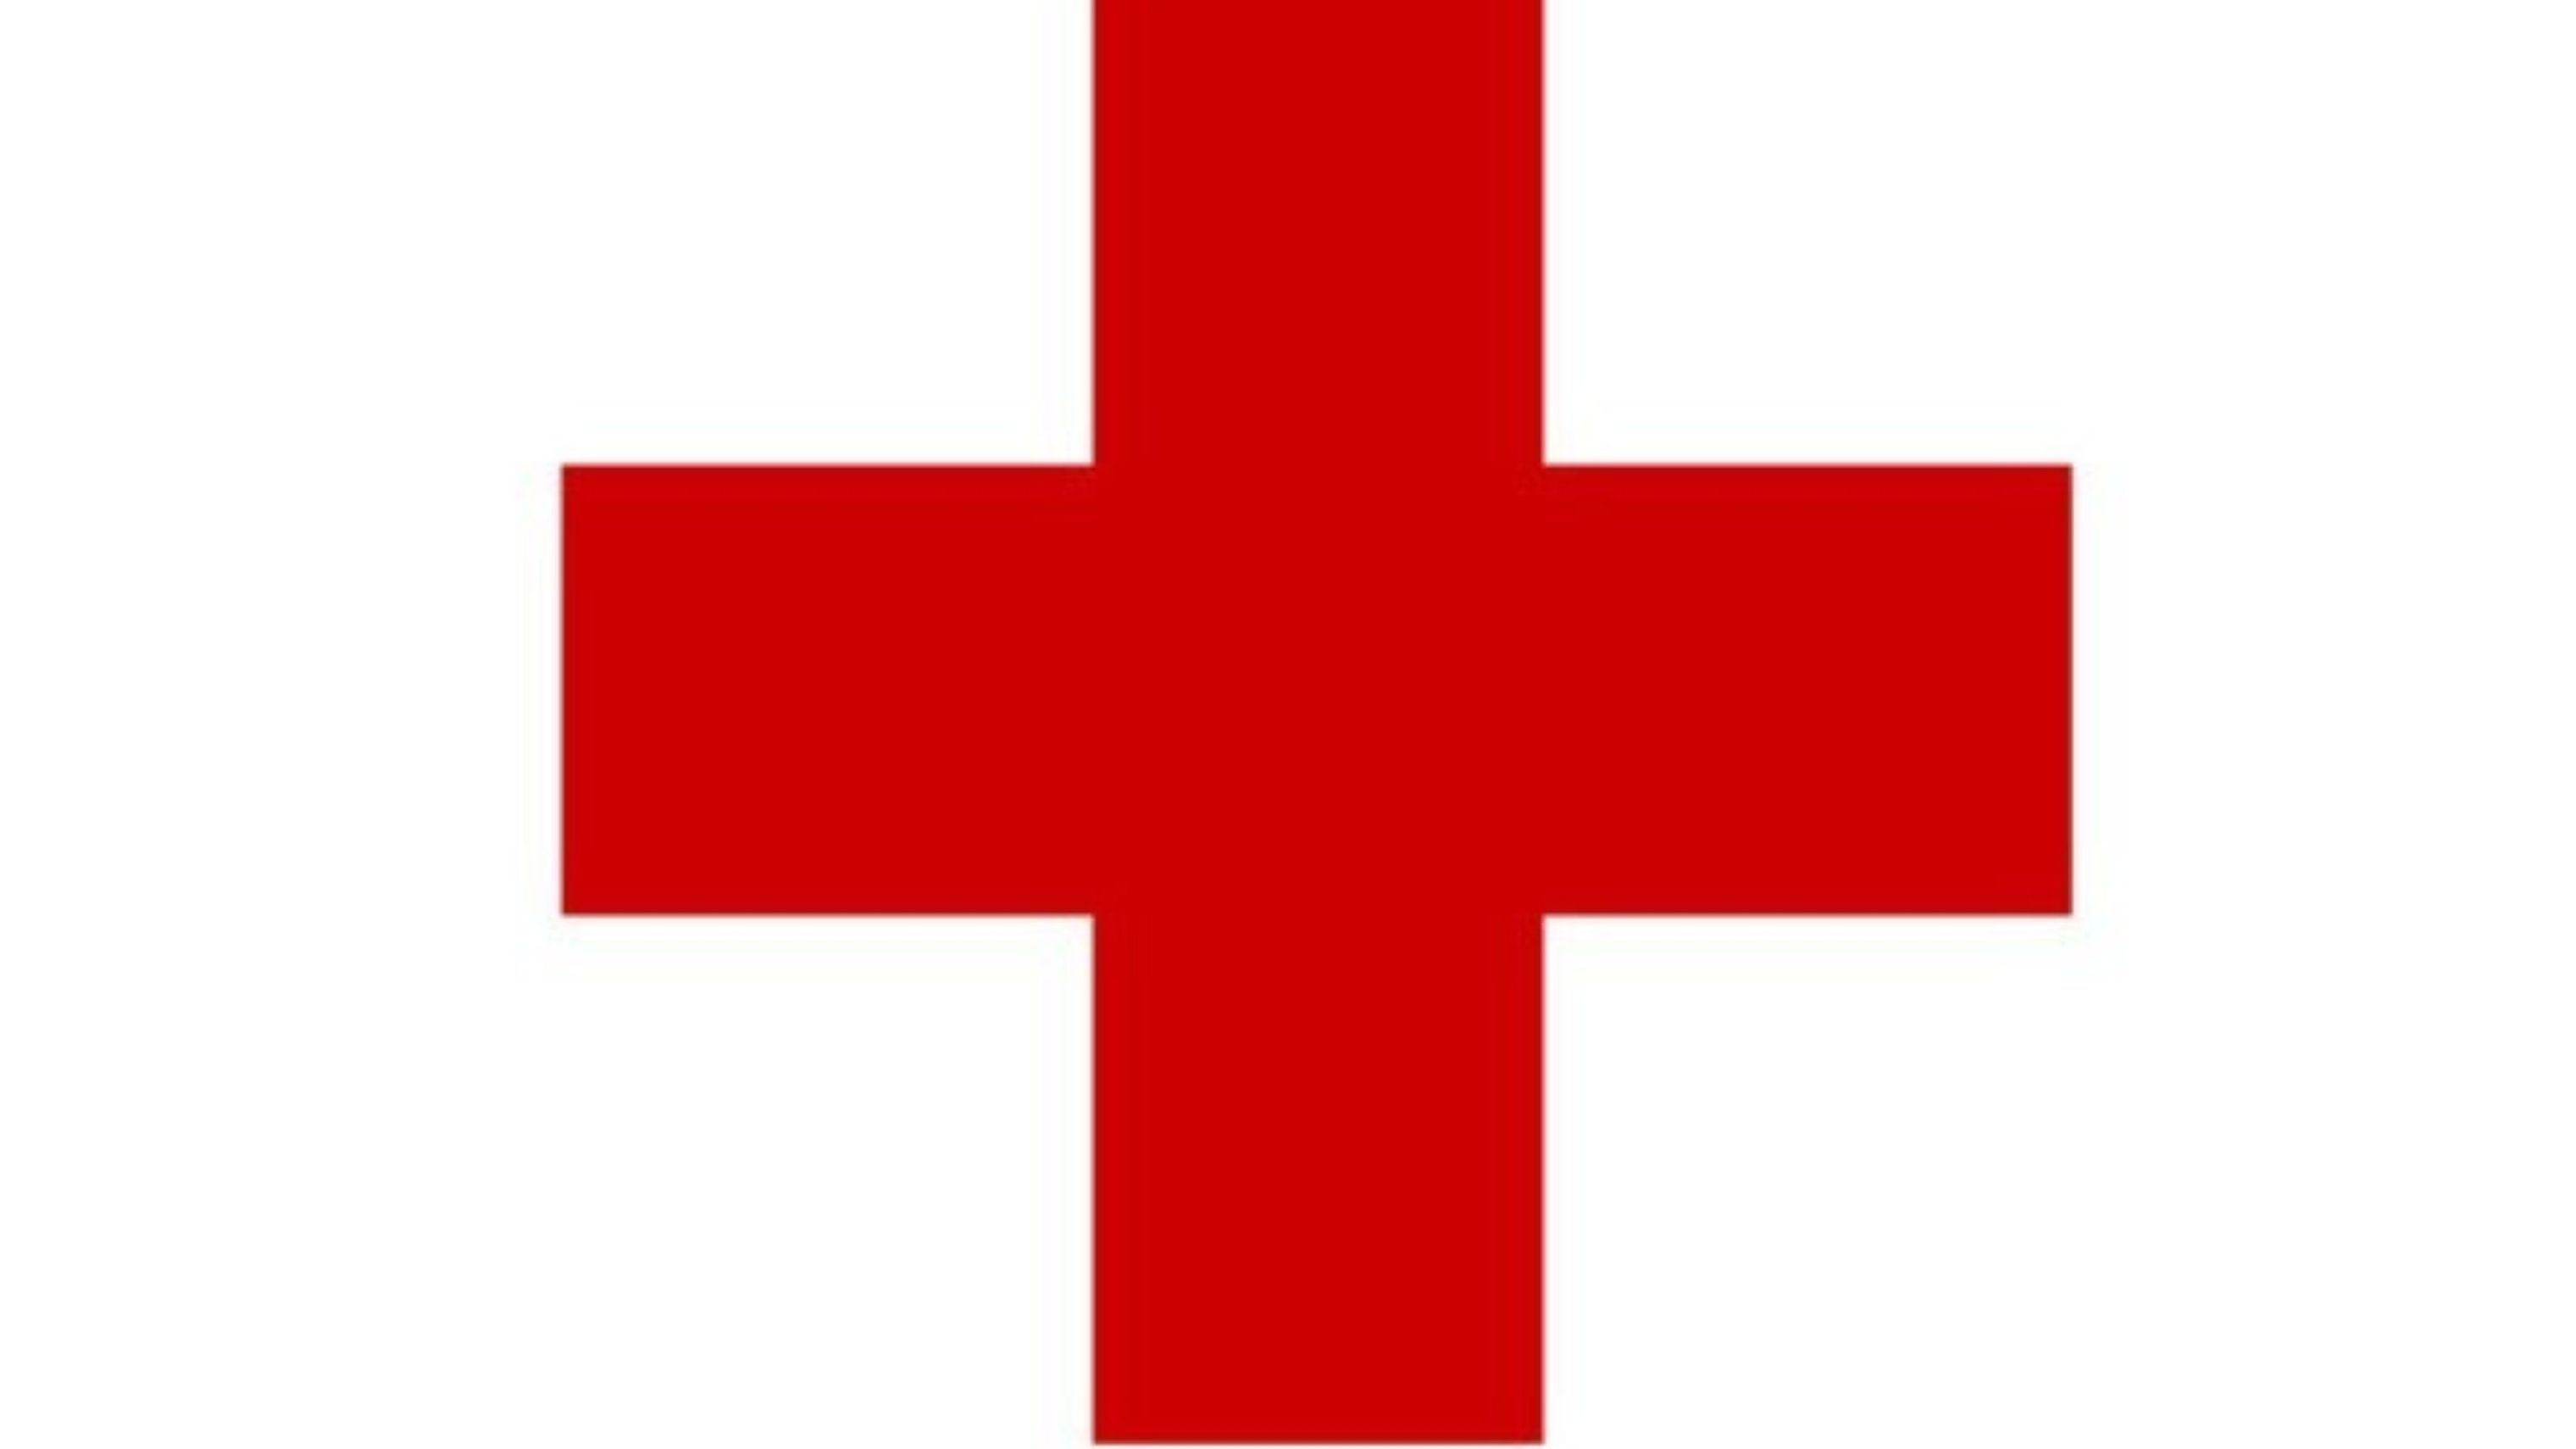 Icrc clipart svg download Logos for american red cross logo vector clipart free to use ... svg download